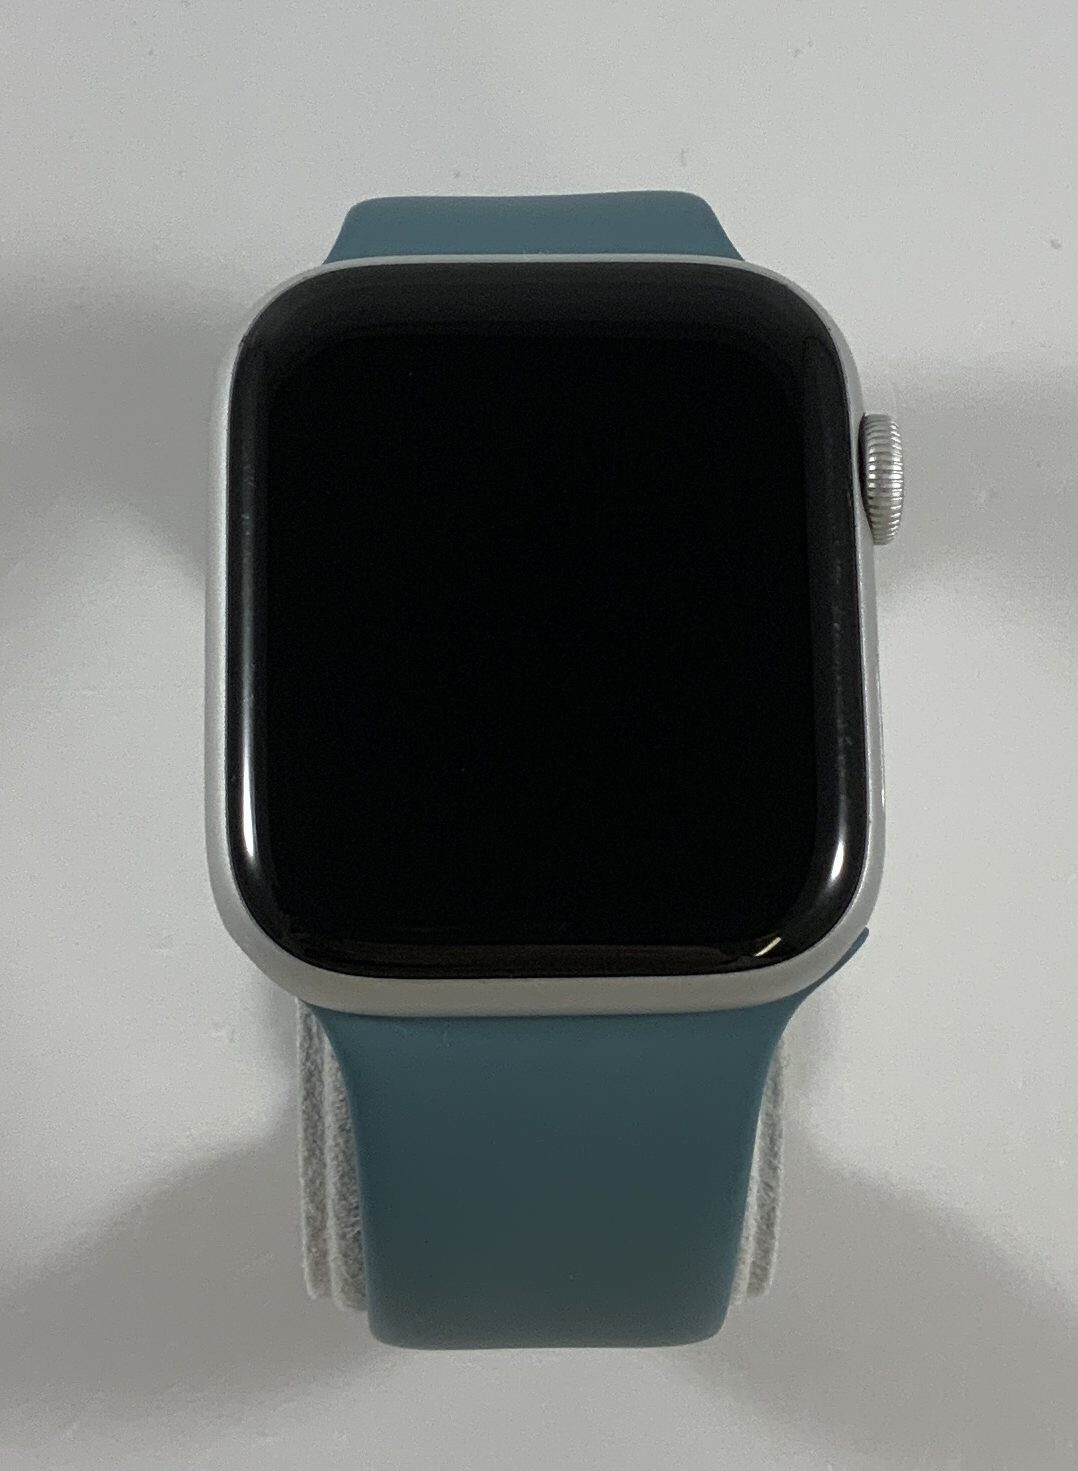 Watch Series 5 Aluminum Cellular (44mm), Silver, image 1